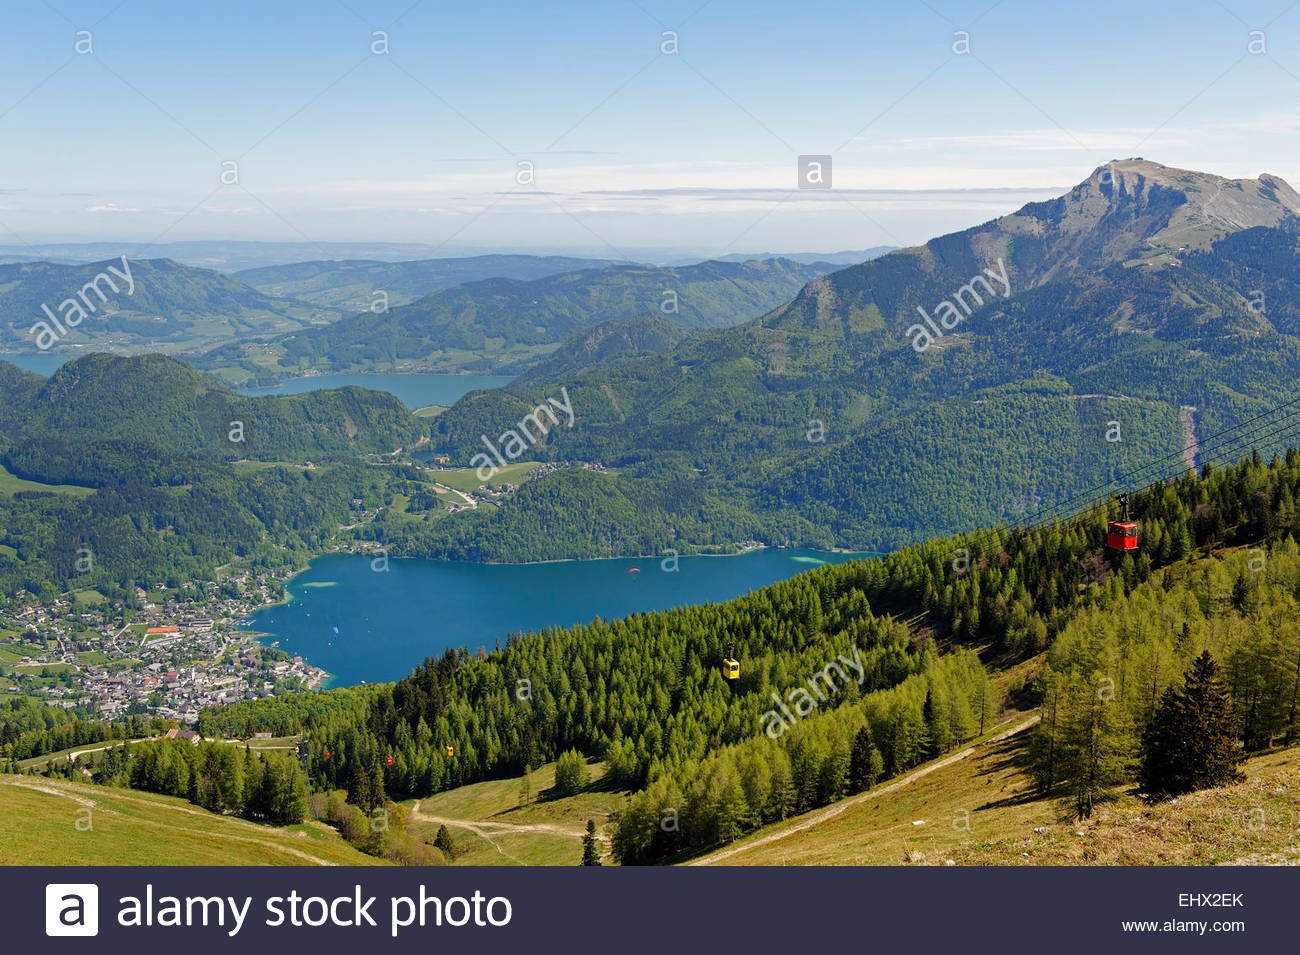 Austria, Salzburg State, Sankt Gilgen, View of town and Lakes Wolfgangsee and Mondsee - Stock Image